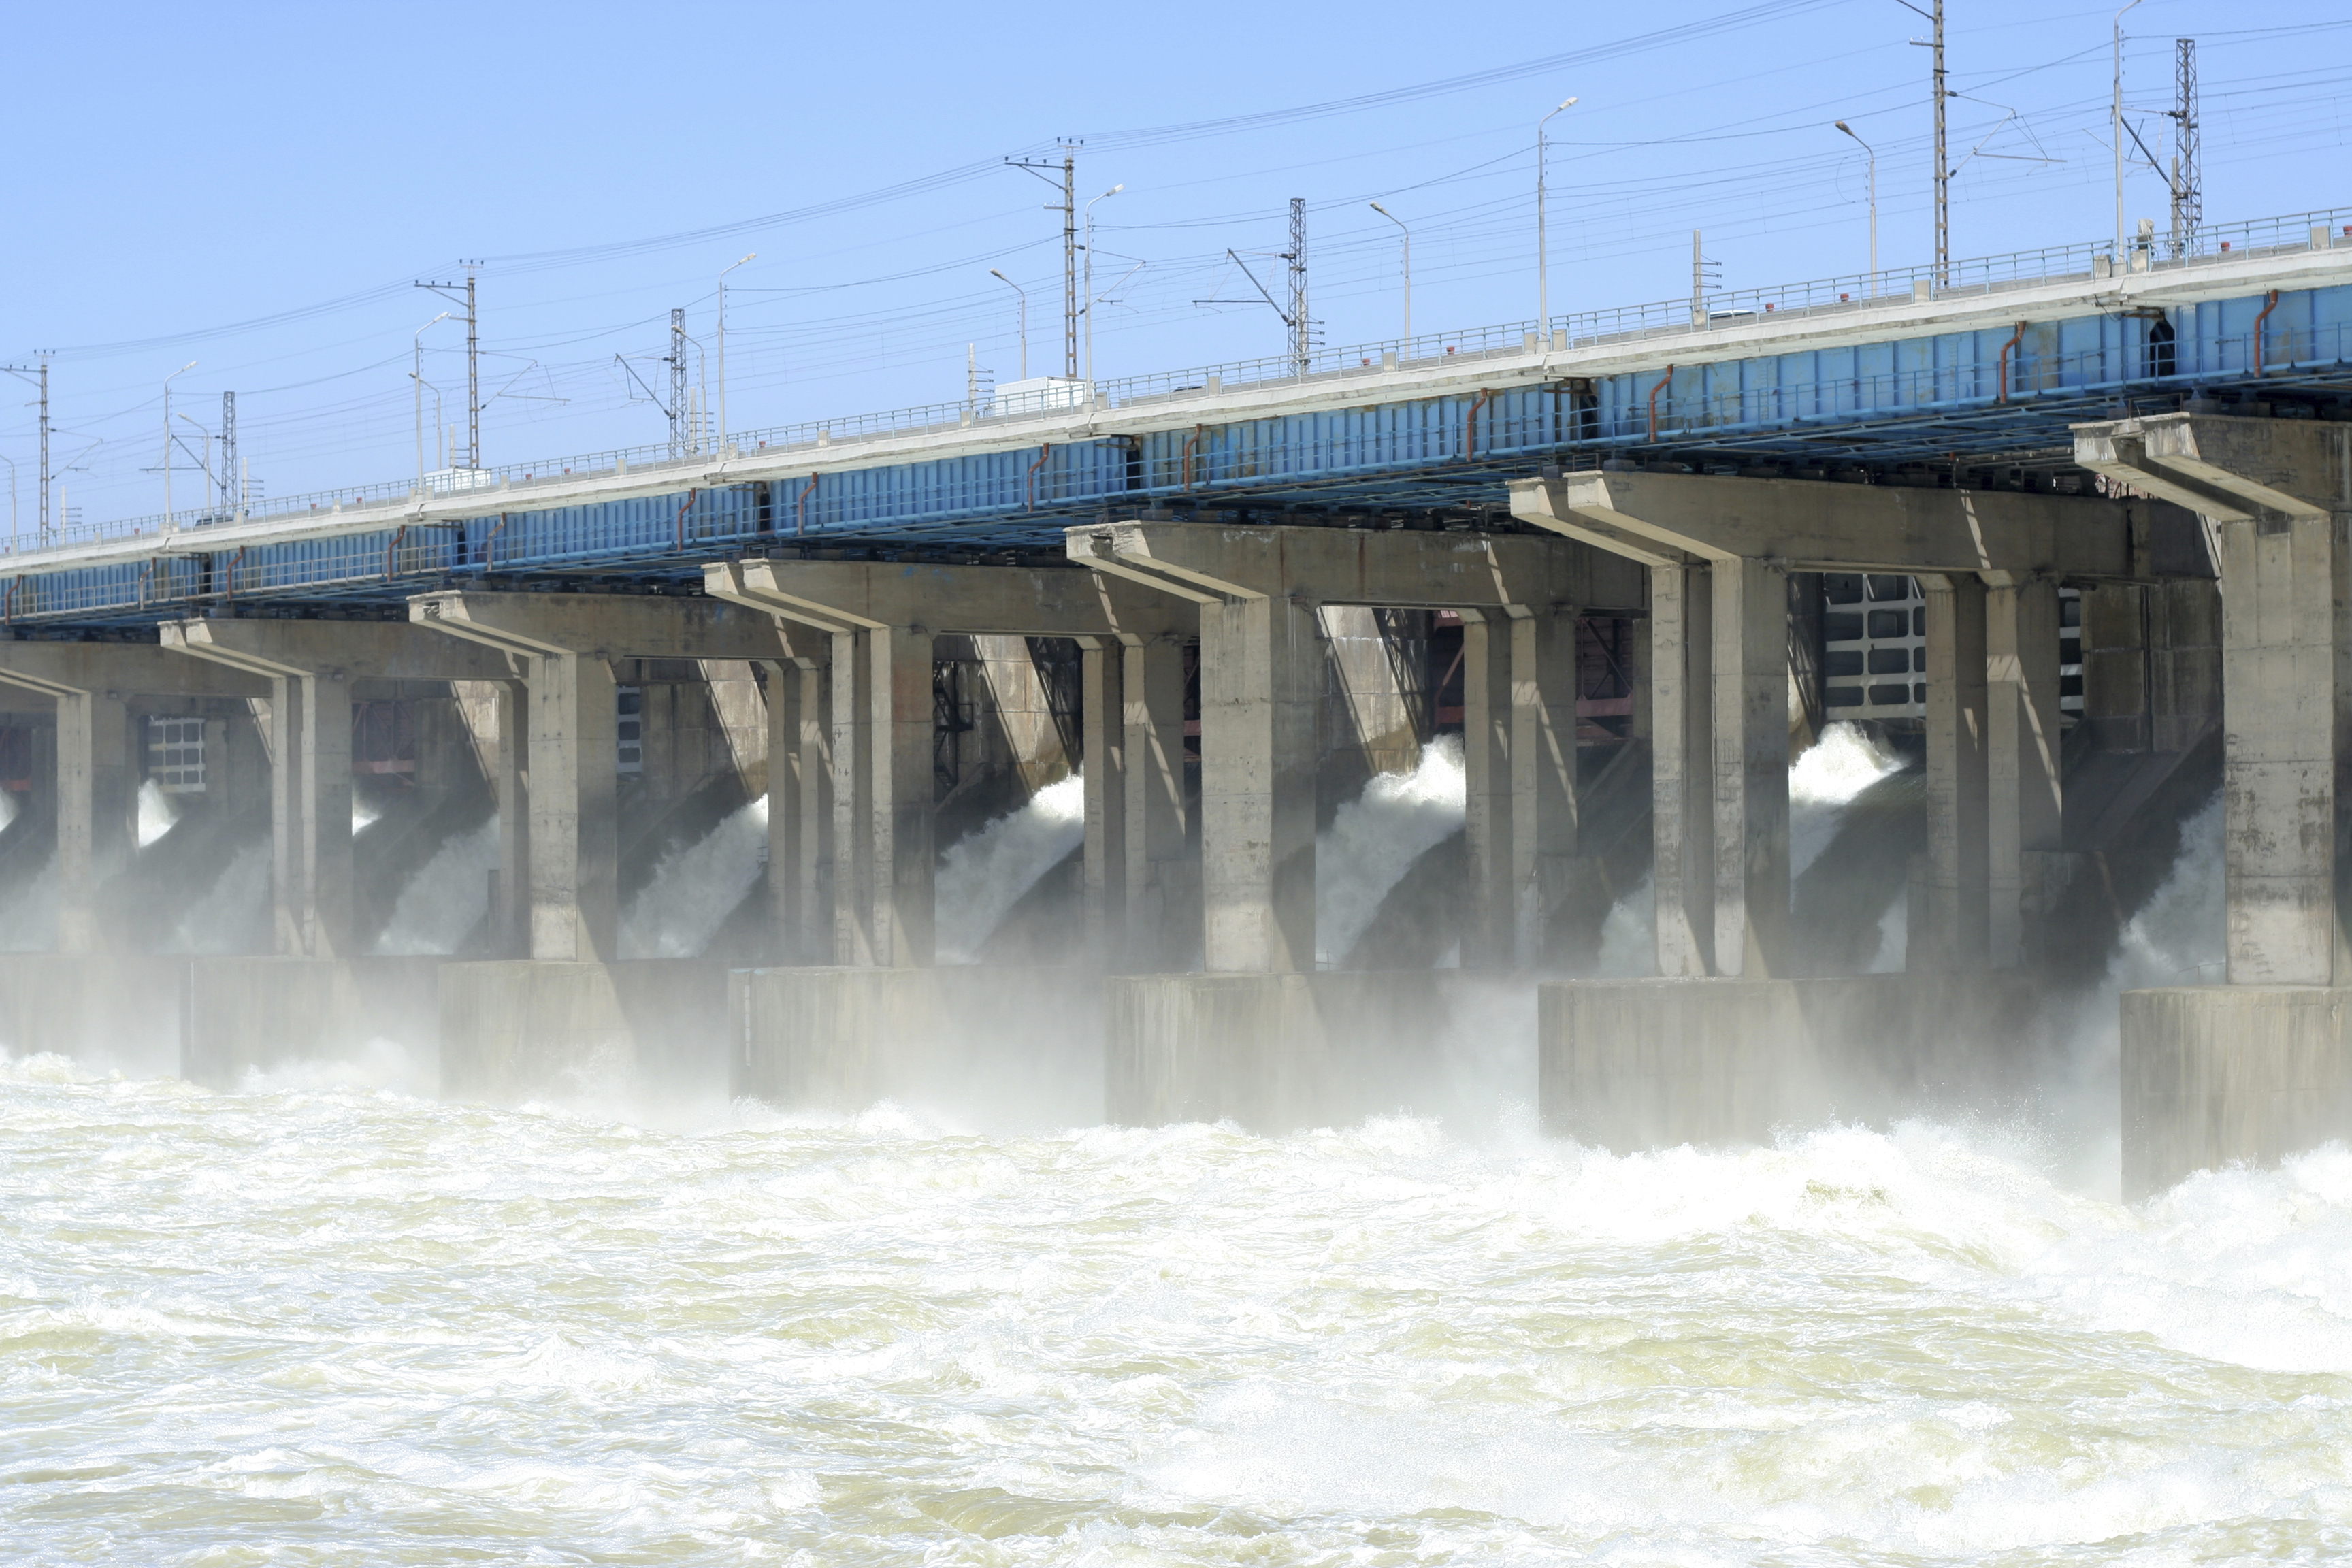 ilisu dam project development The ilisu dam project was only one component of a far larger project, with much wider- reaching implications: the vast and ambitious southeastern anatolia project, known as gap after its turkish title (guneydogu anadolu projesi.